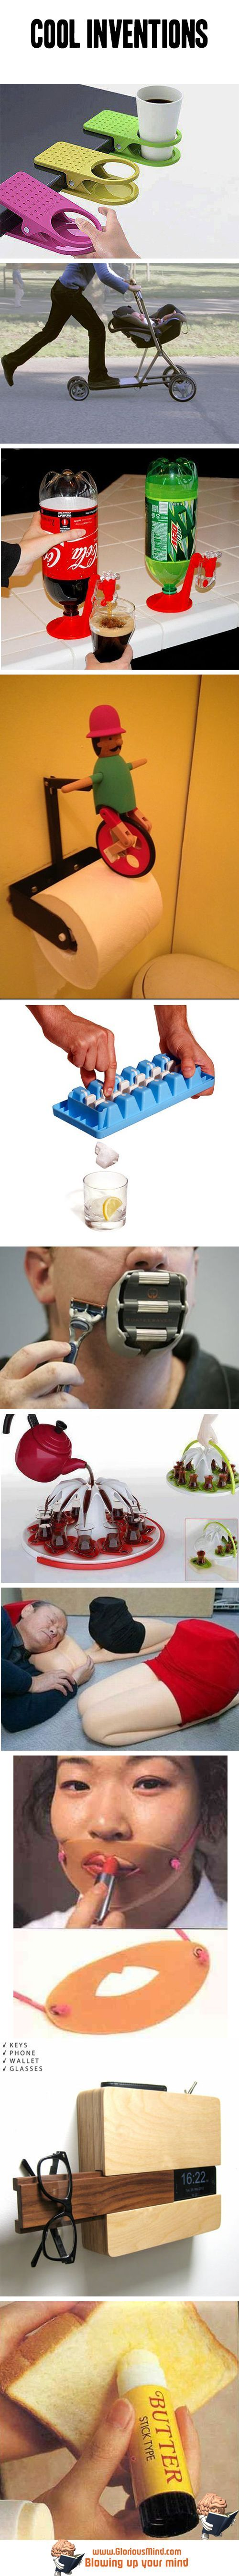 Cool inventions                                                                                                                                                                                 More